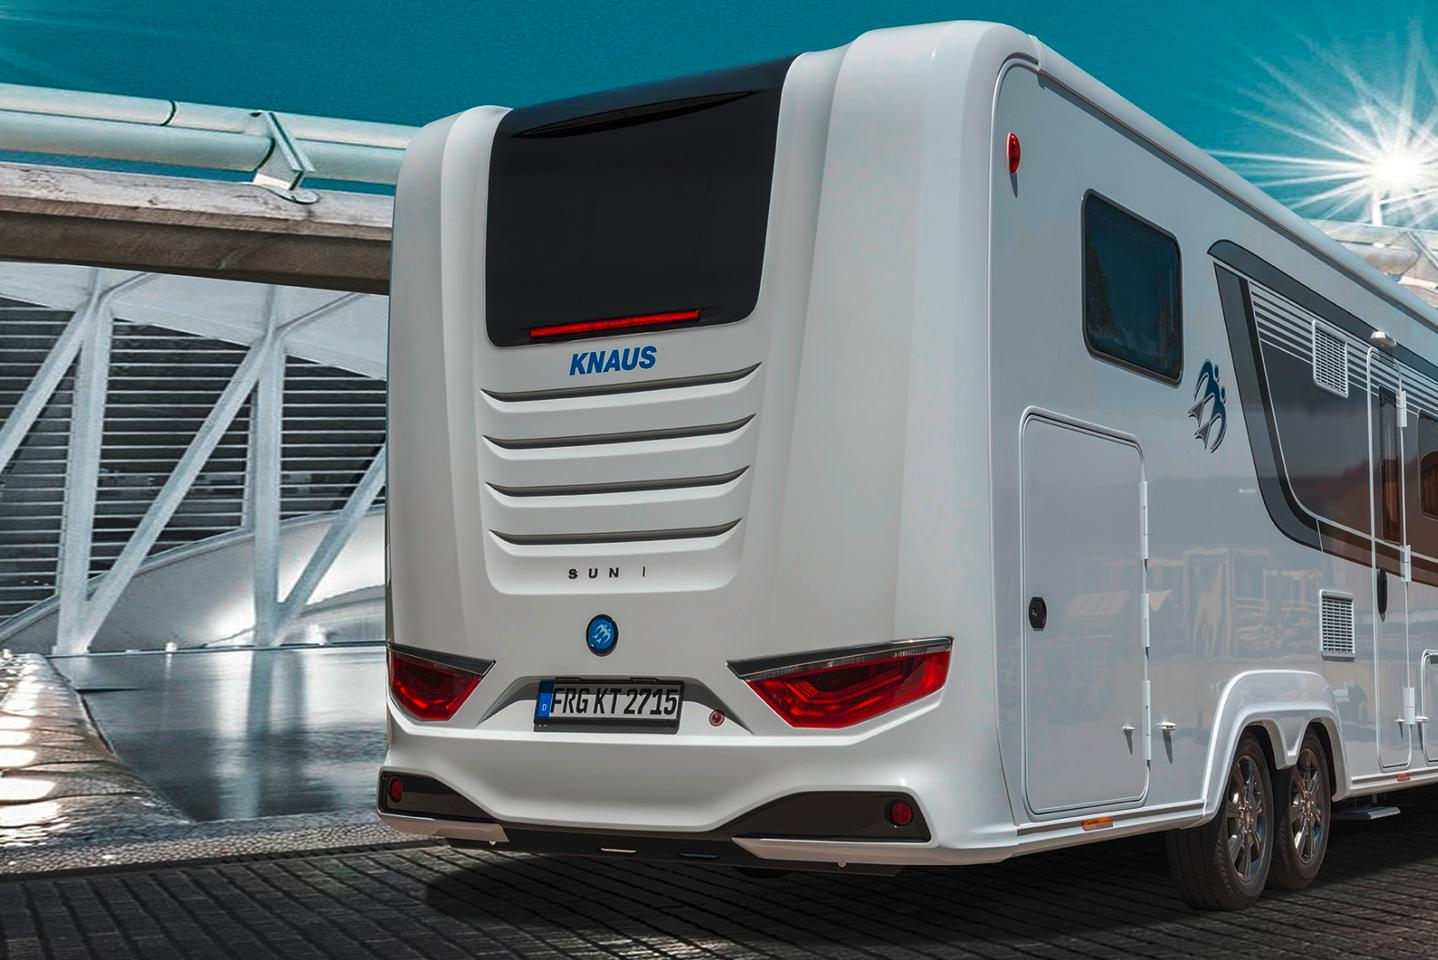 The Sun i motorhome shares a taillight design with the Eurostar caravan